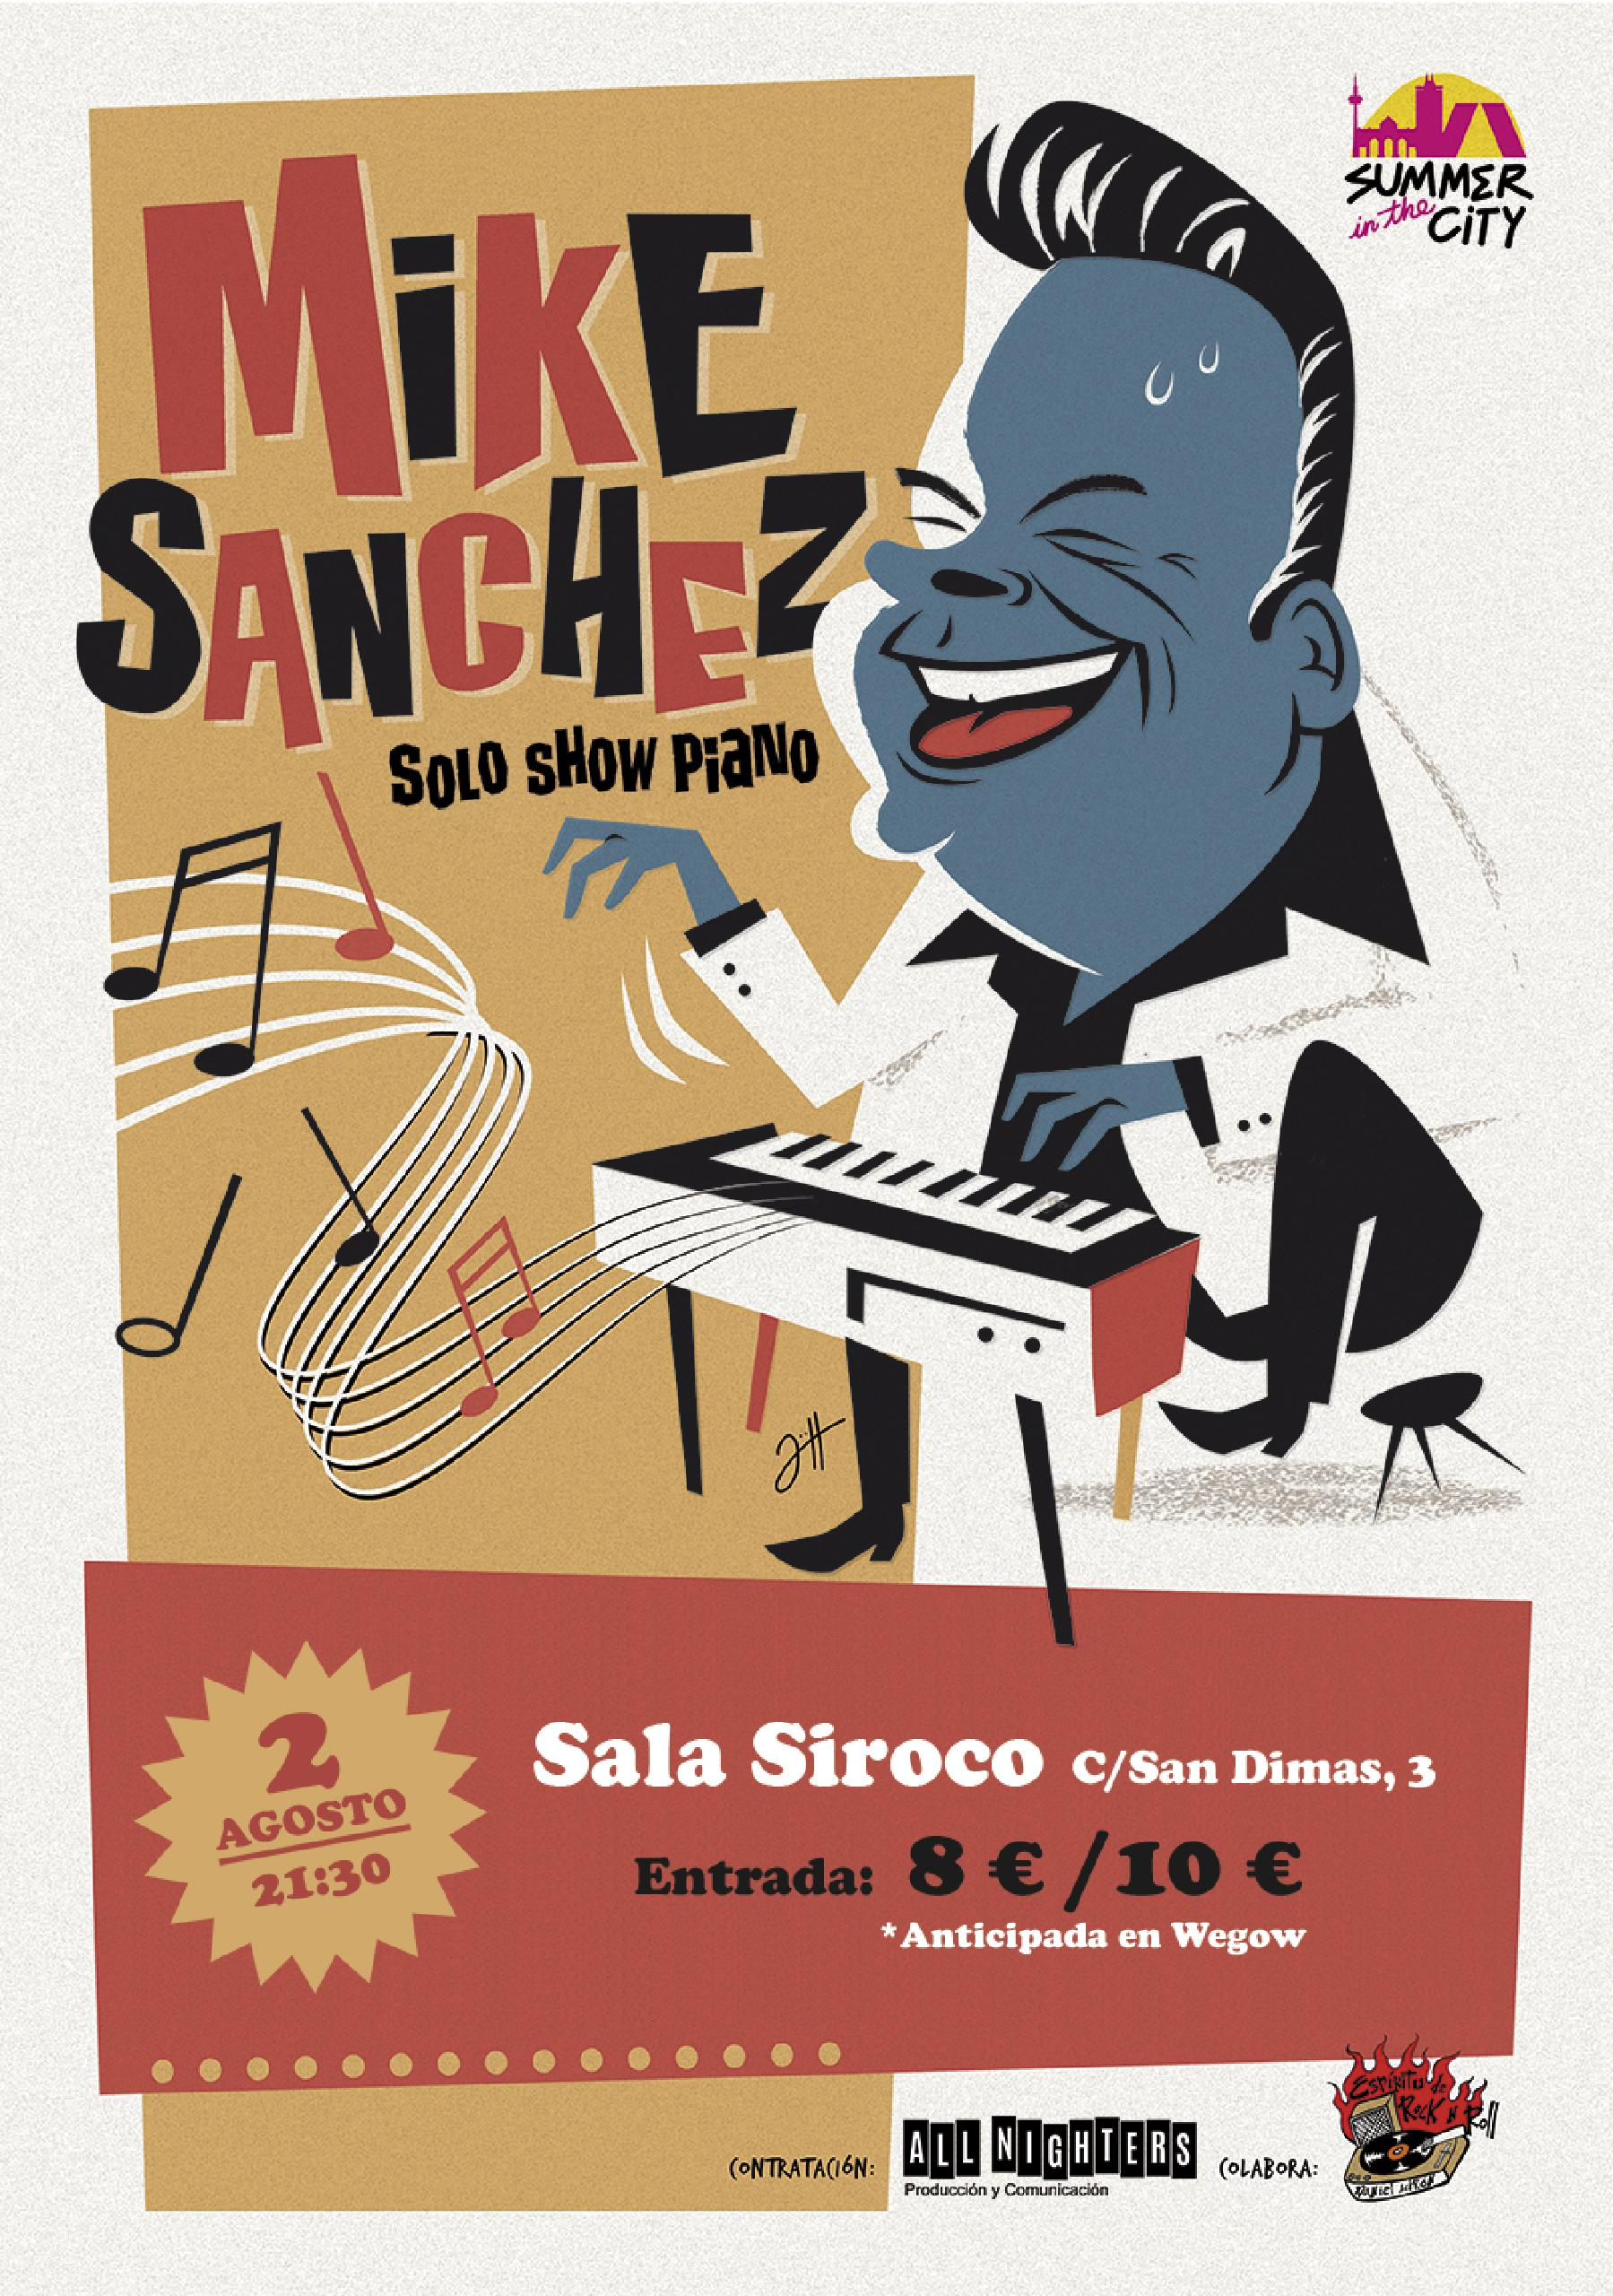 Mike Sanchez en Siroco